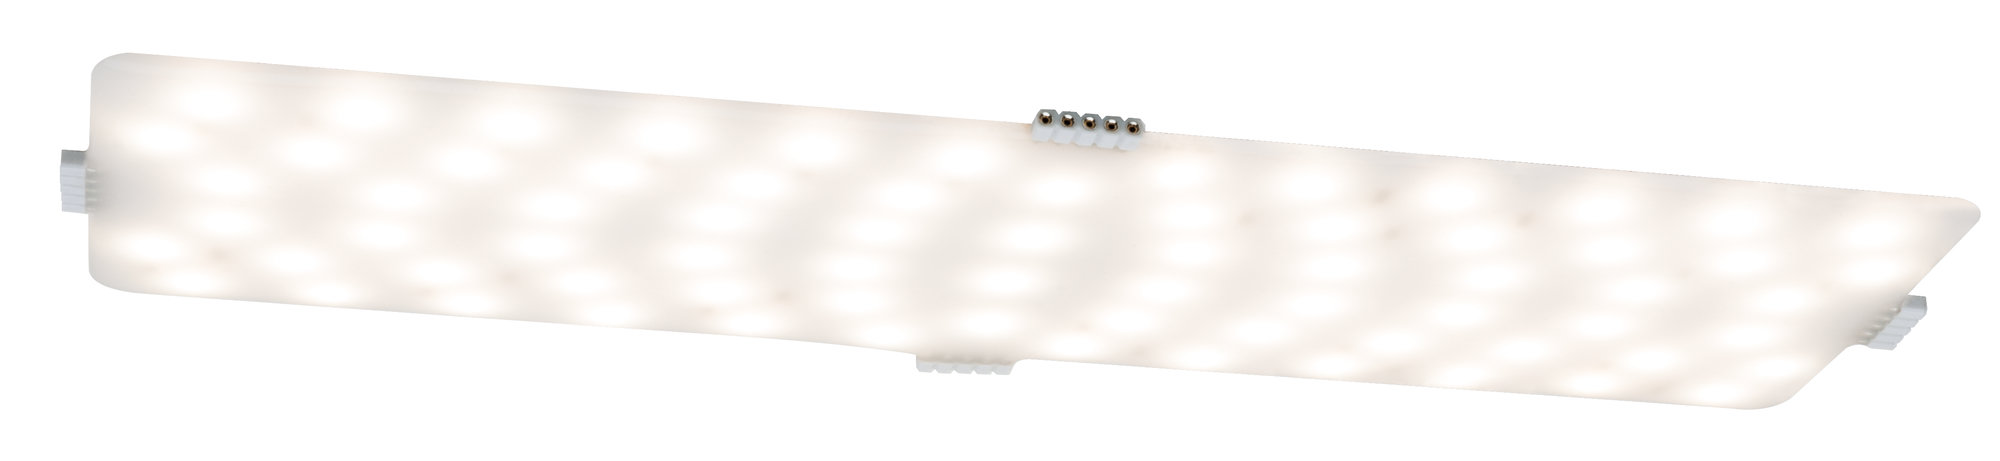 Paulmann CabinetLight MaxLED Warm Panel onderbouwlamp